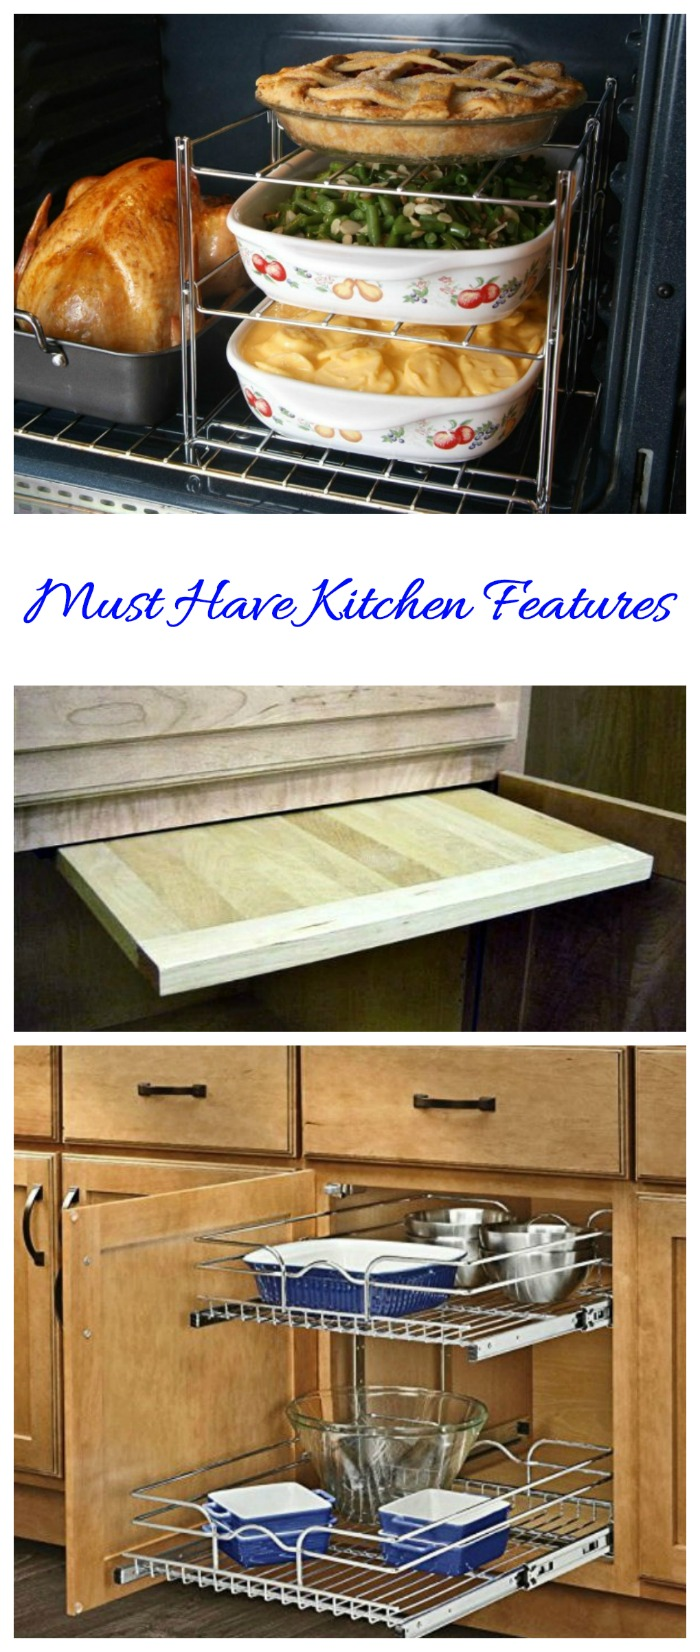 Must Have Kitchen Features